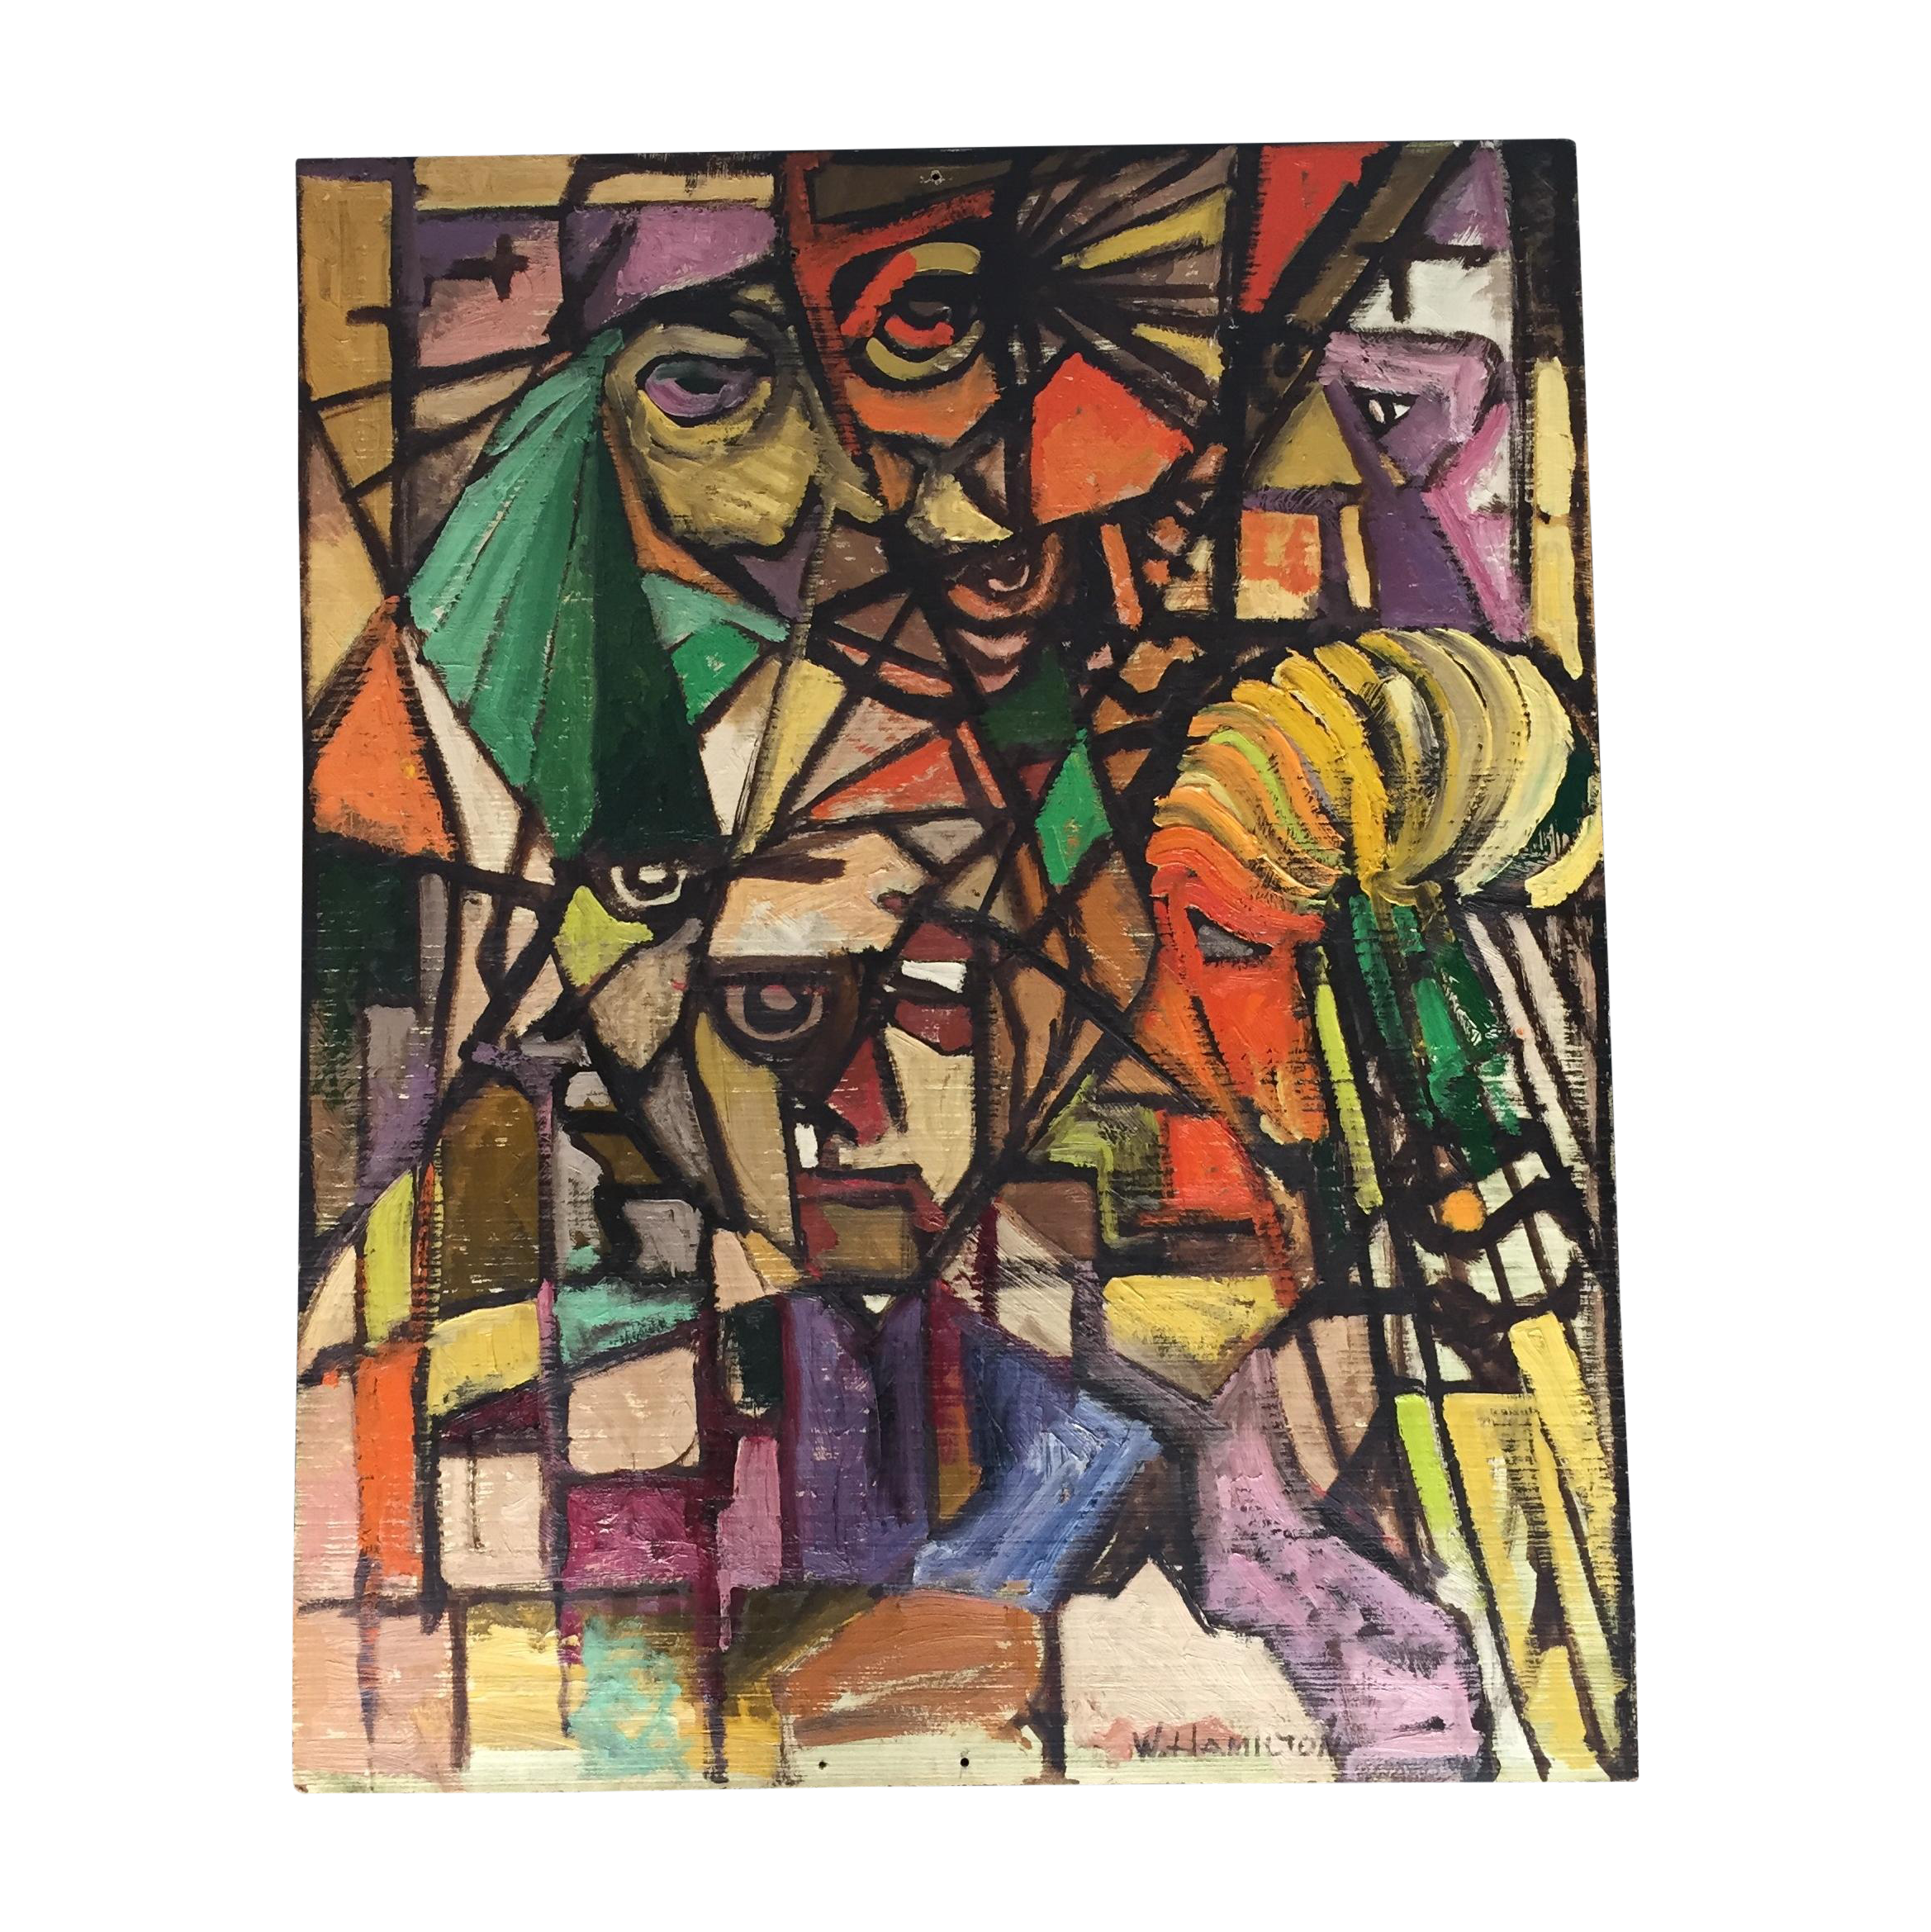 Cubism drawing colorful. Vintage abstract signed cubist